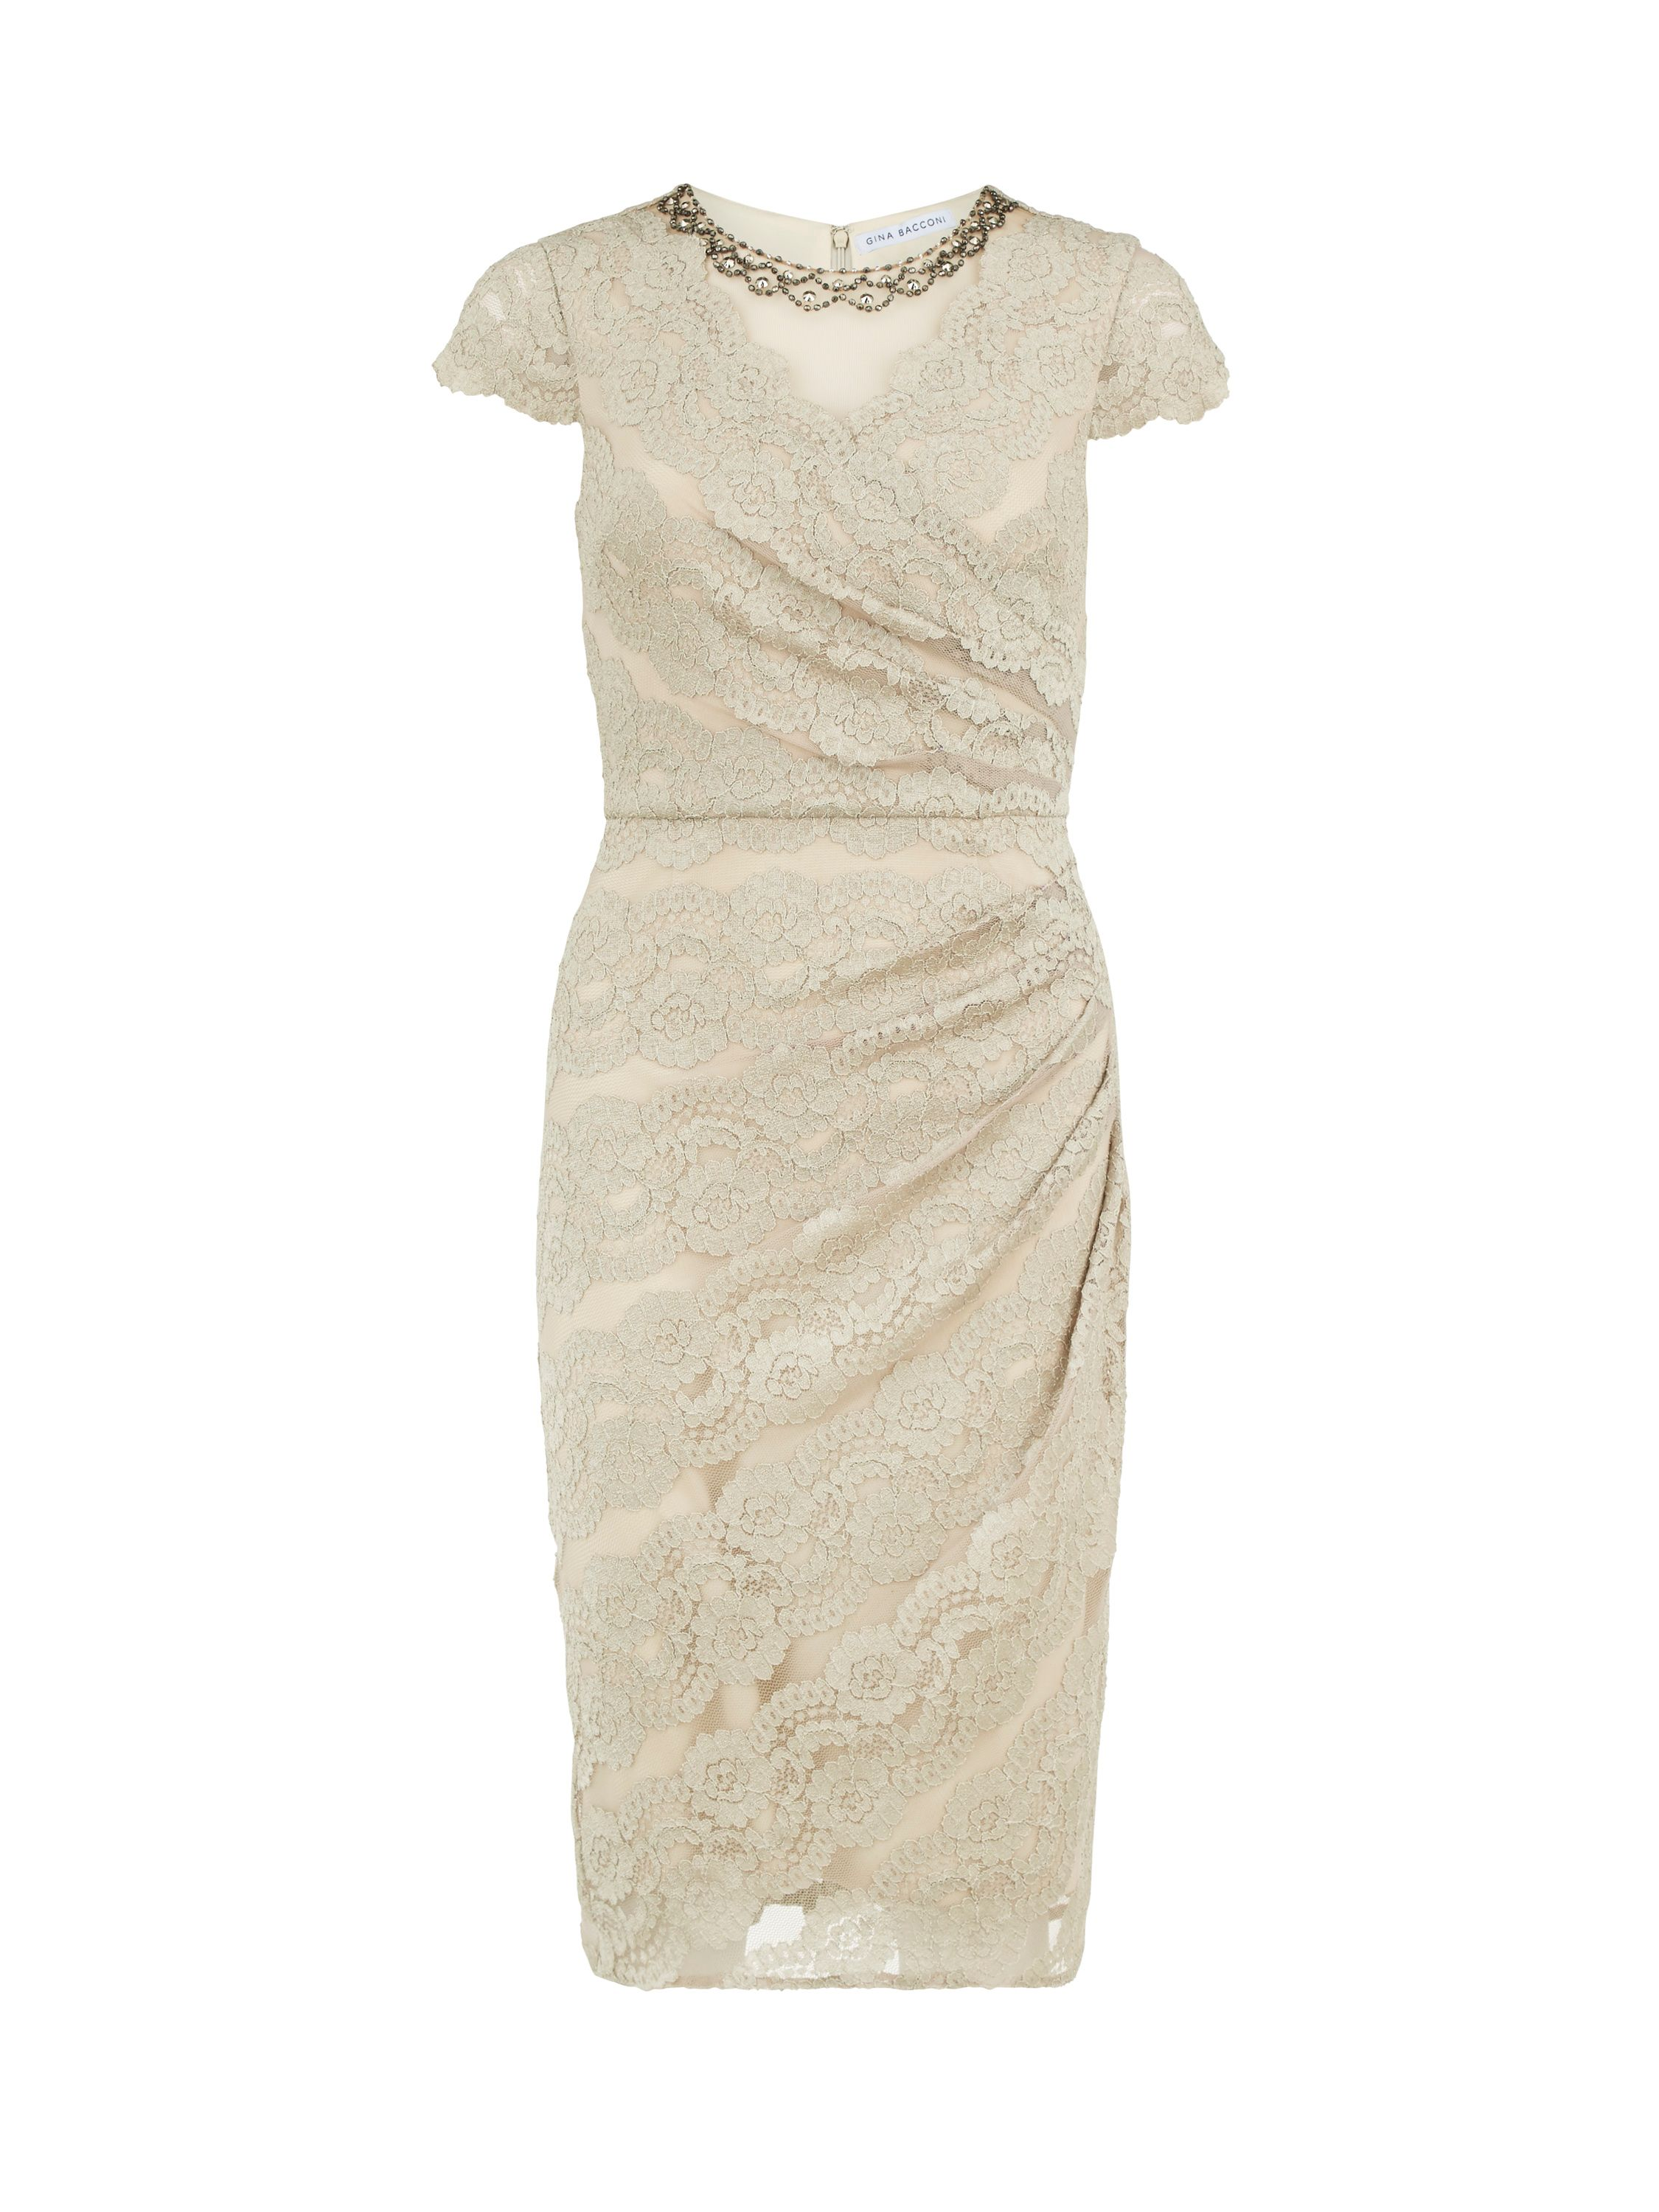 Gina Bacconi Beaded scallop stretch lace dress $270.00 AT vintagedancer.com